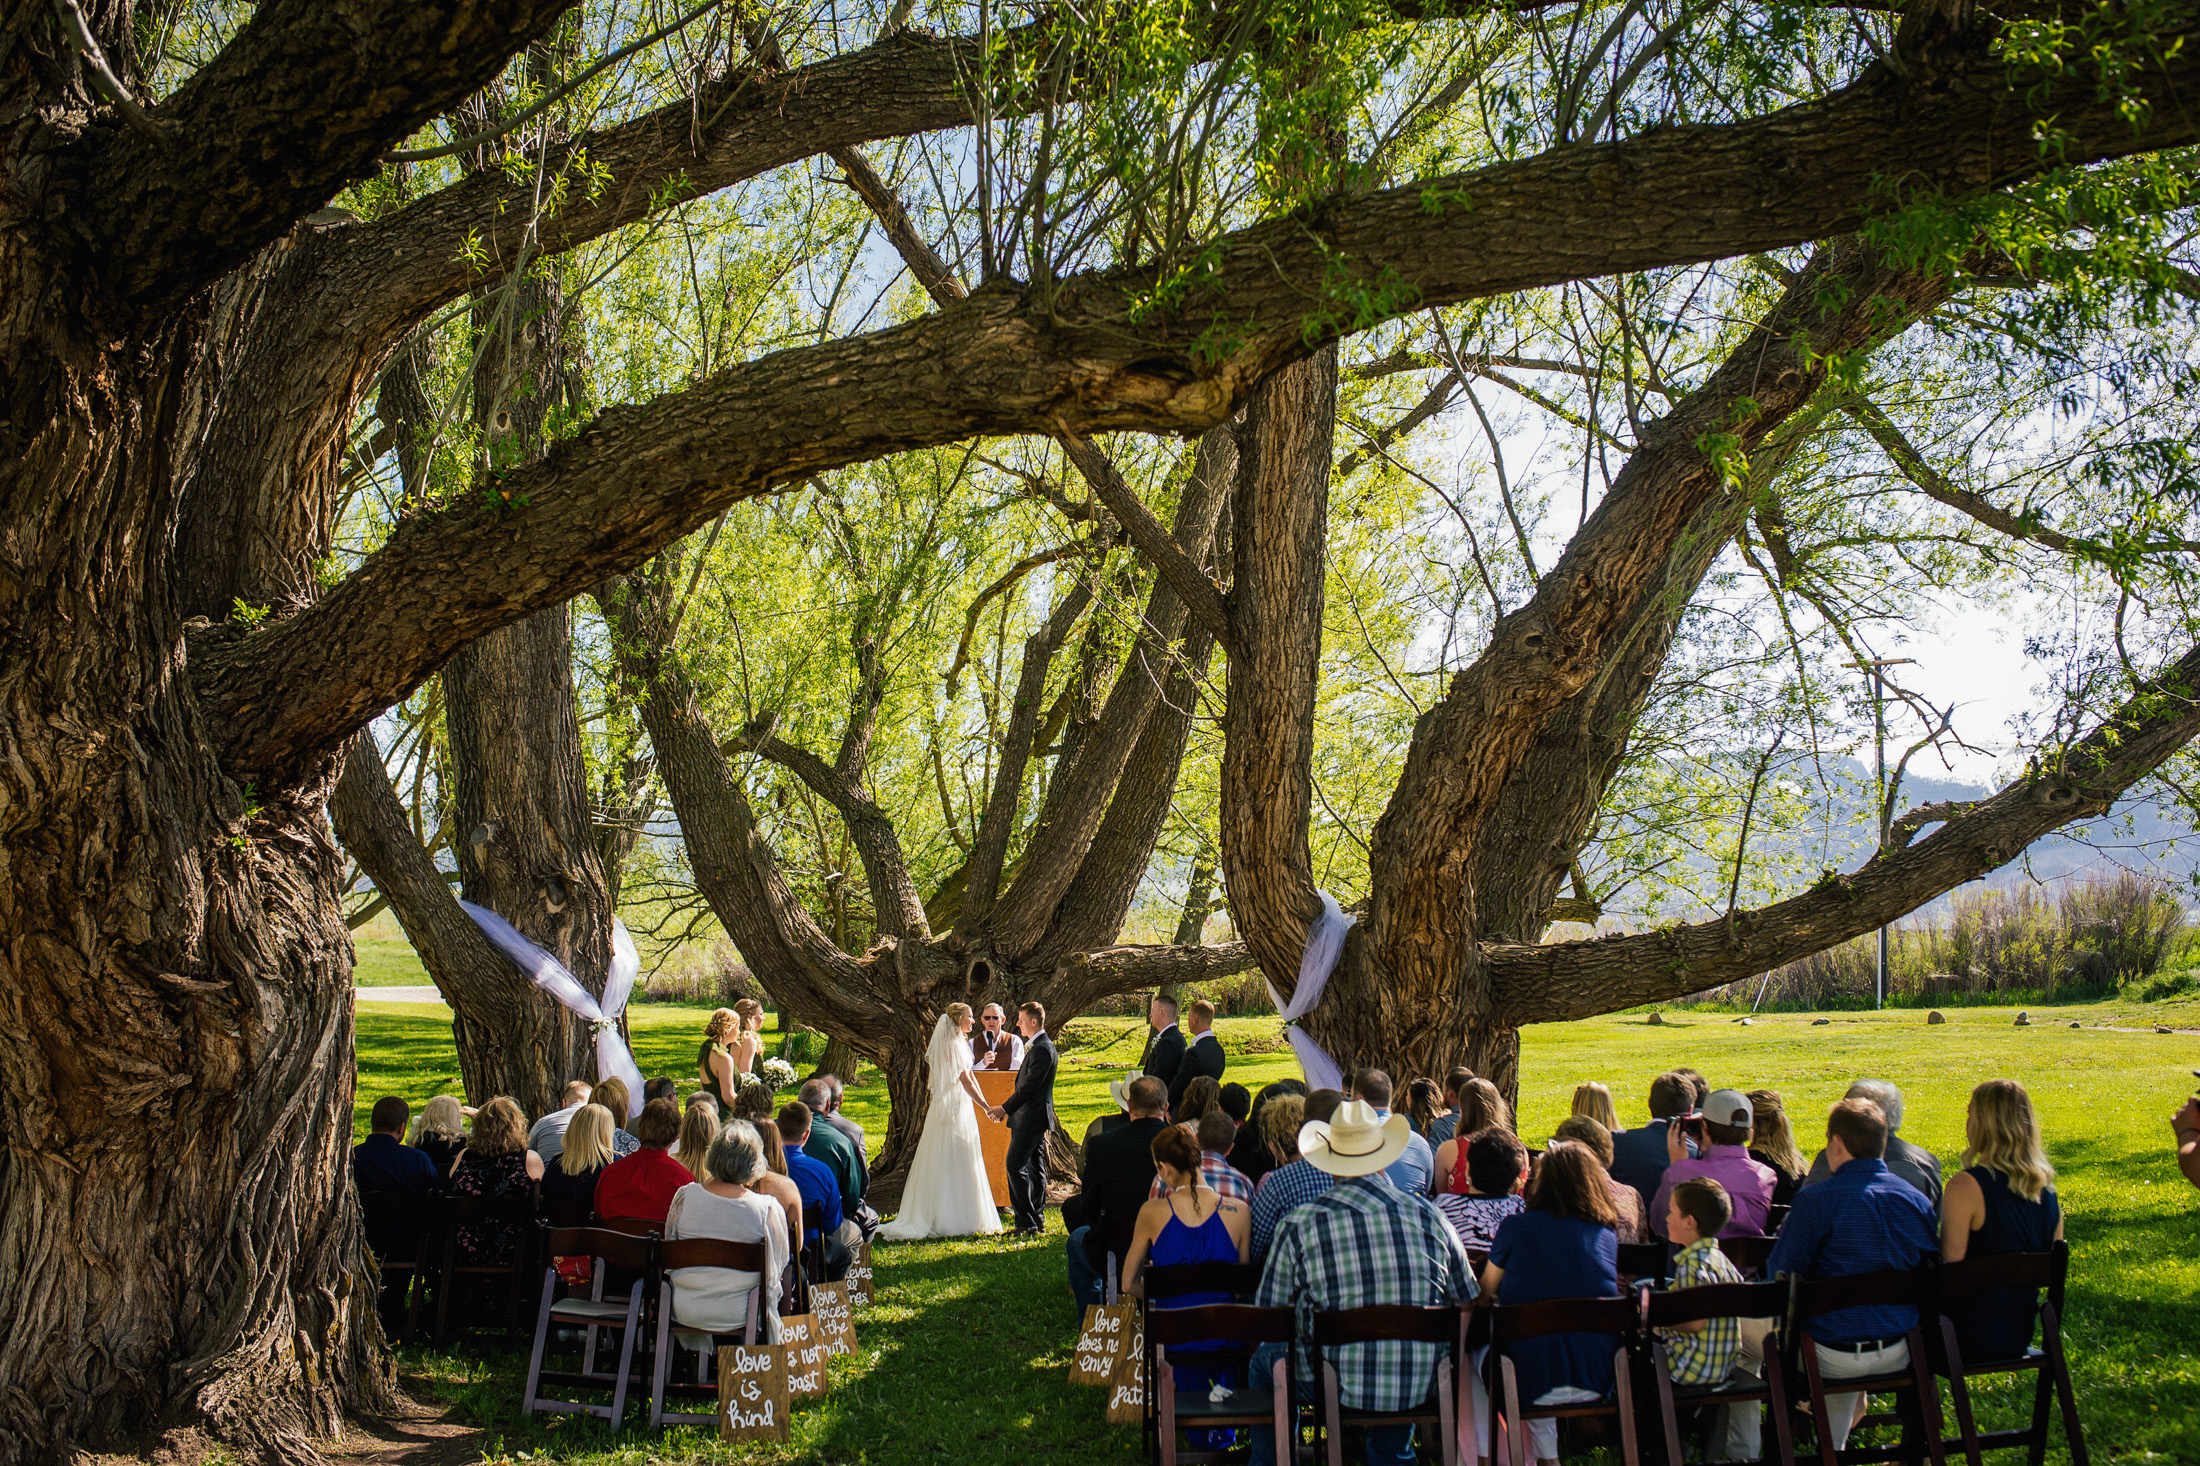 Wedding ceremony underneath Willow trees at Willow Vale Events.